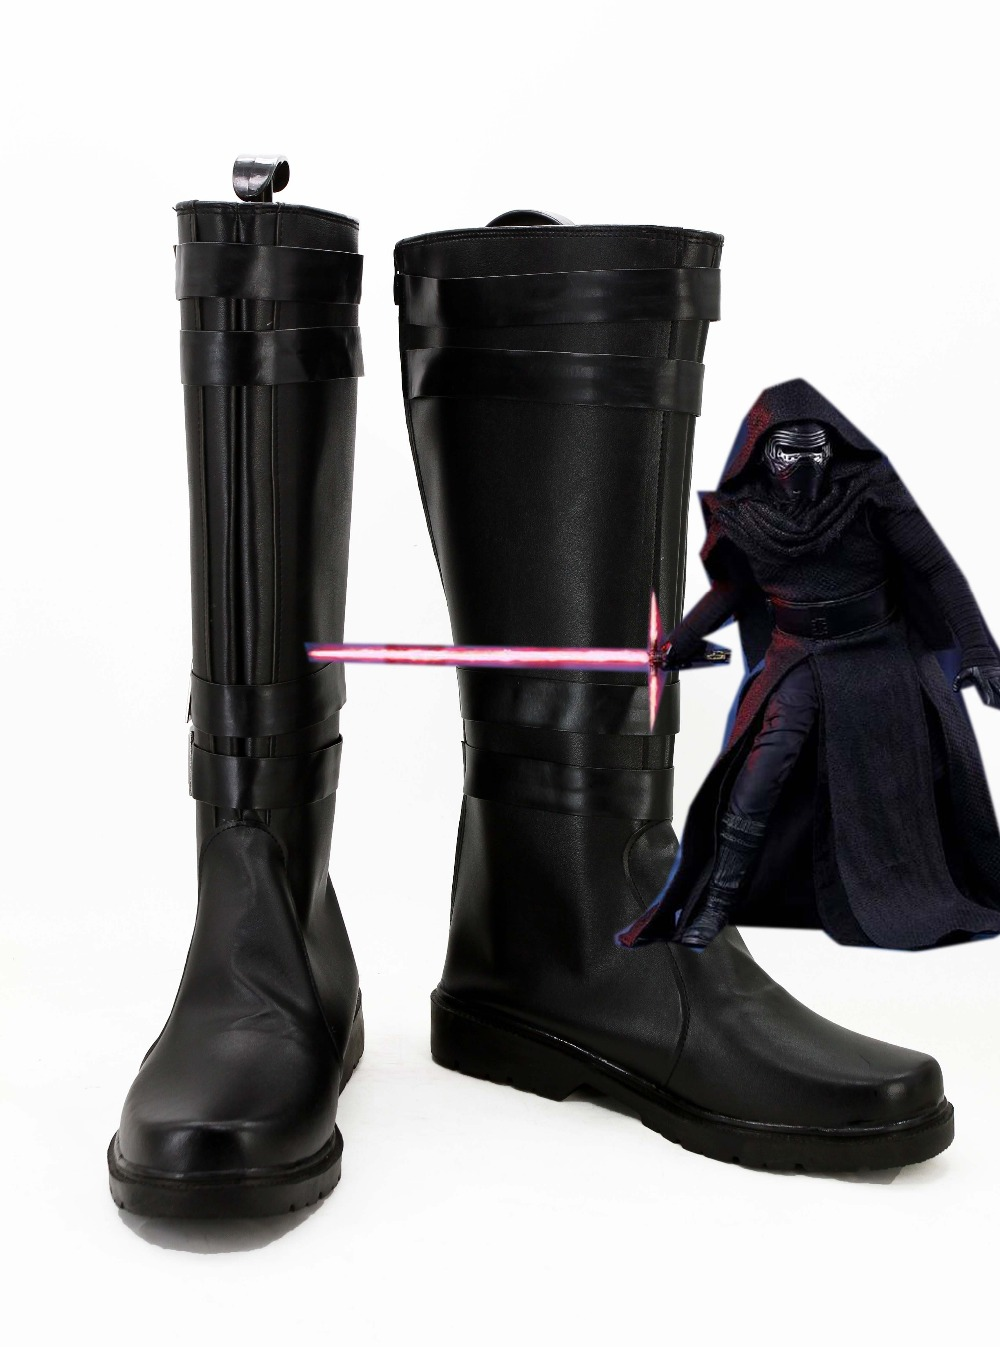 Star Wars 7: Force Awakens Kylo Ren ootizmet e këpucëve Cosplay Kostum Cosplay Made